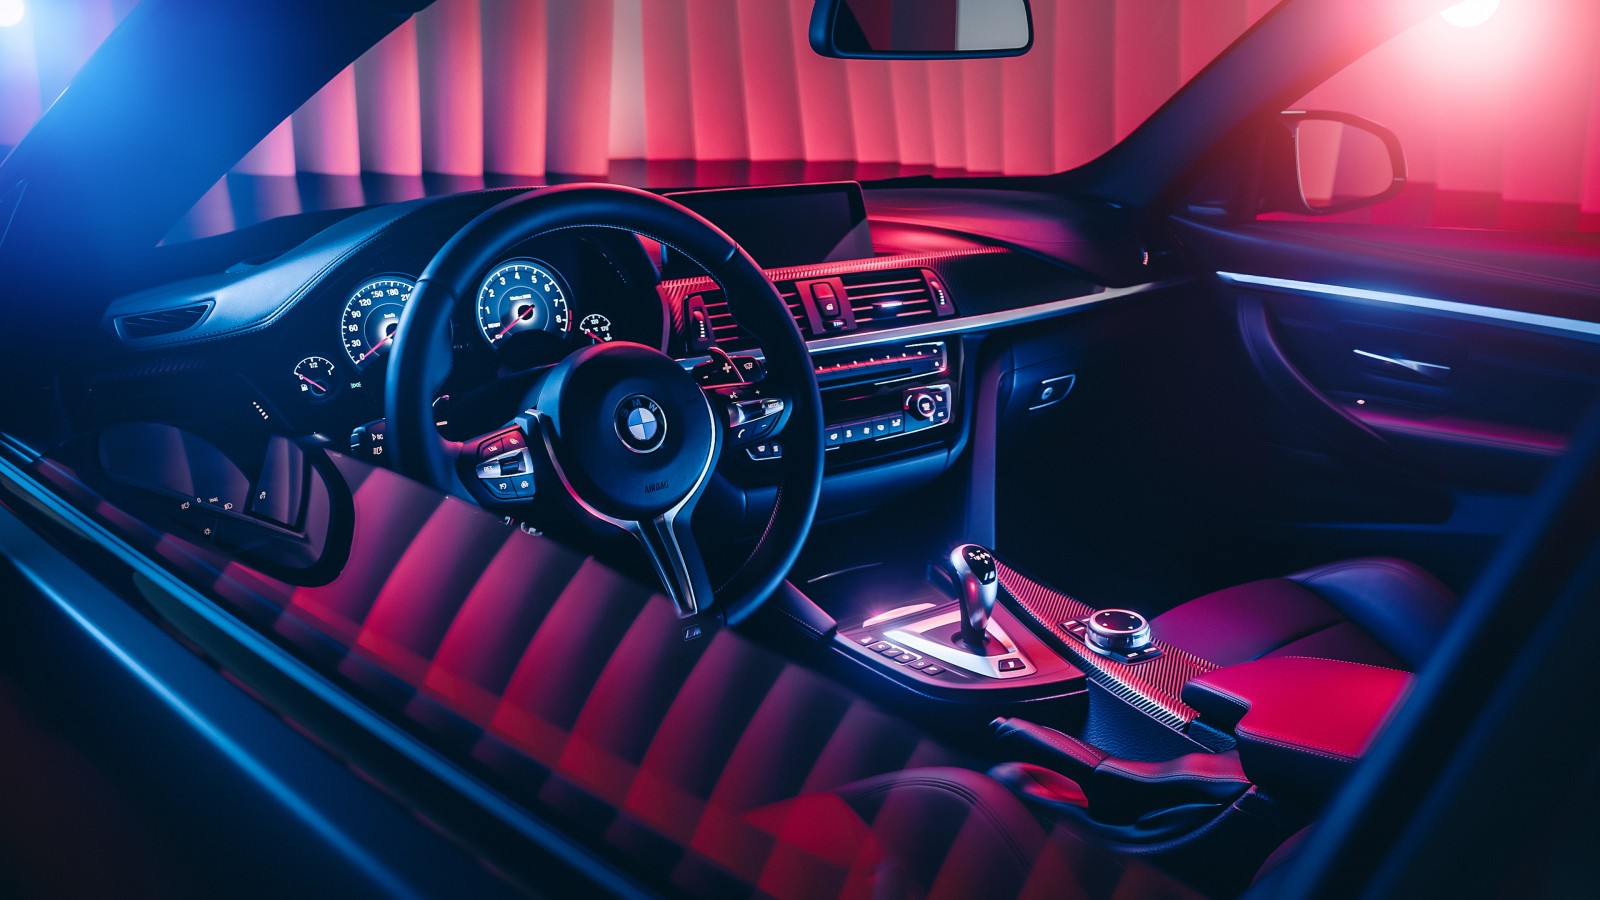 bmw m4 m performance interior 4k wallpaper